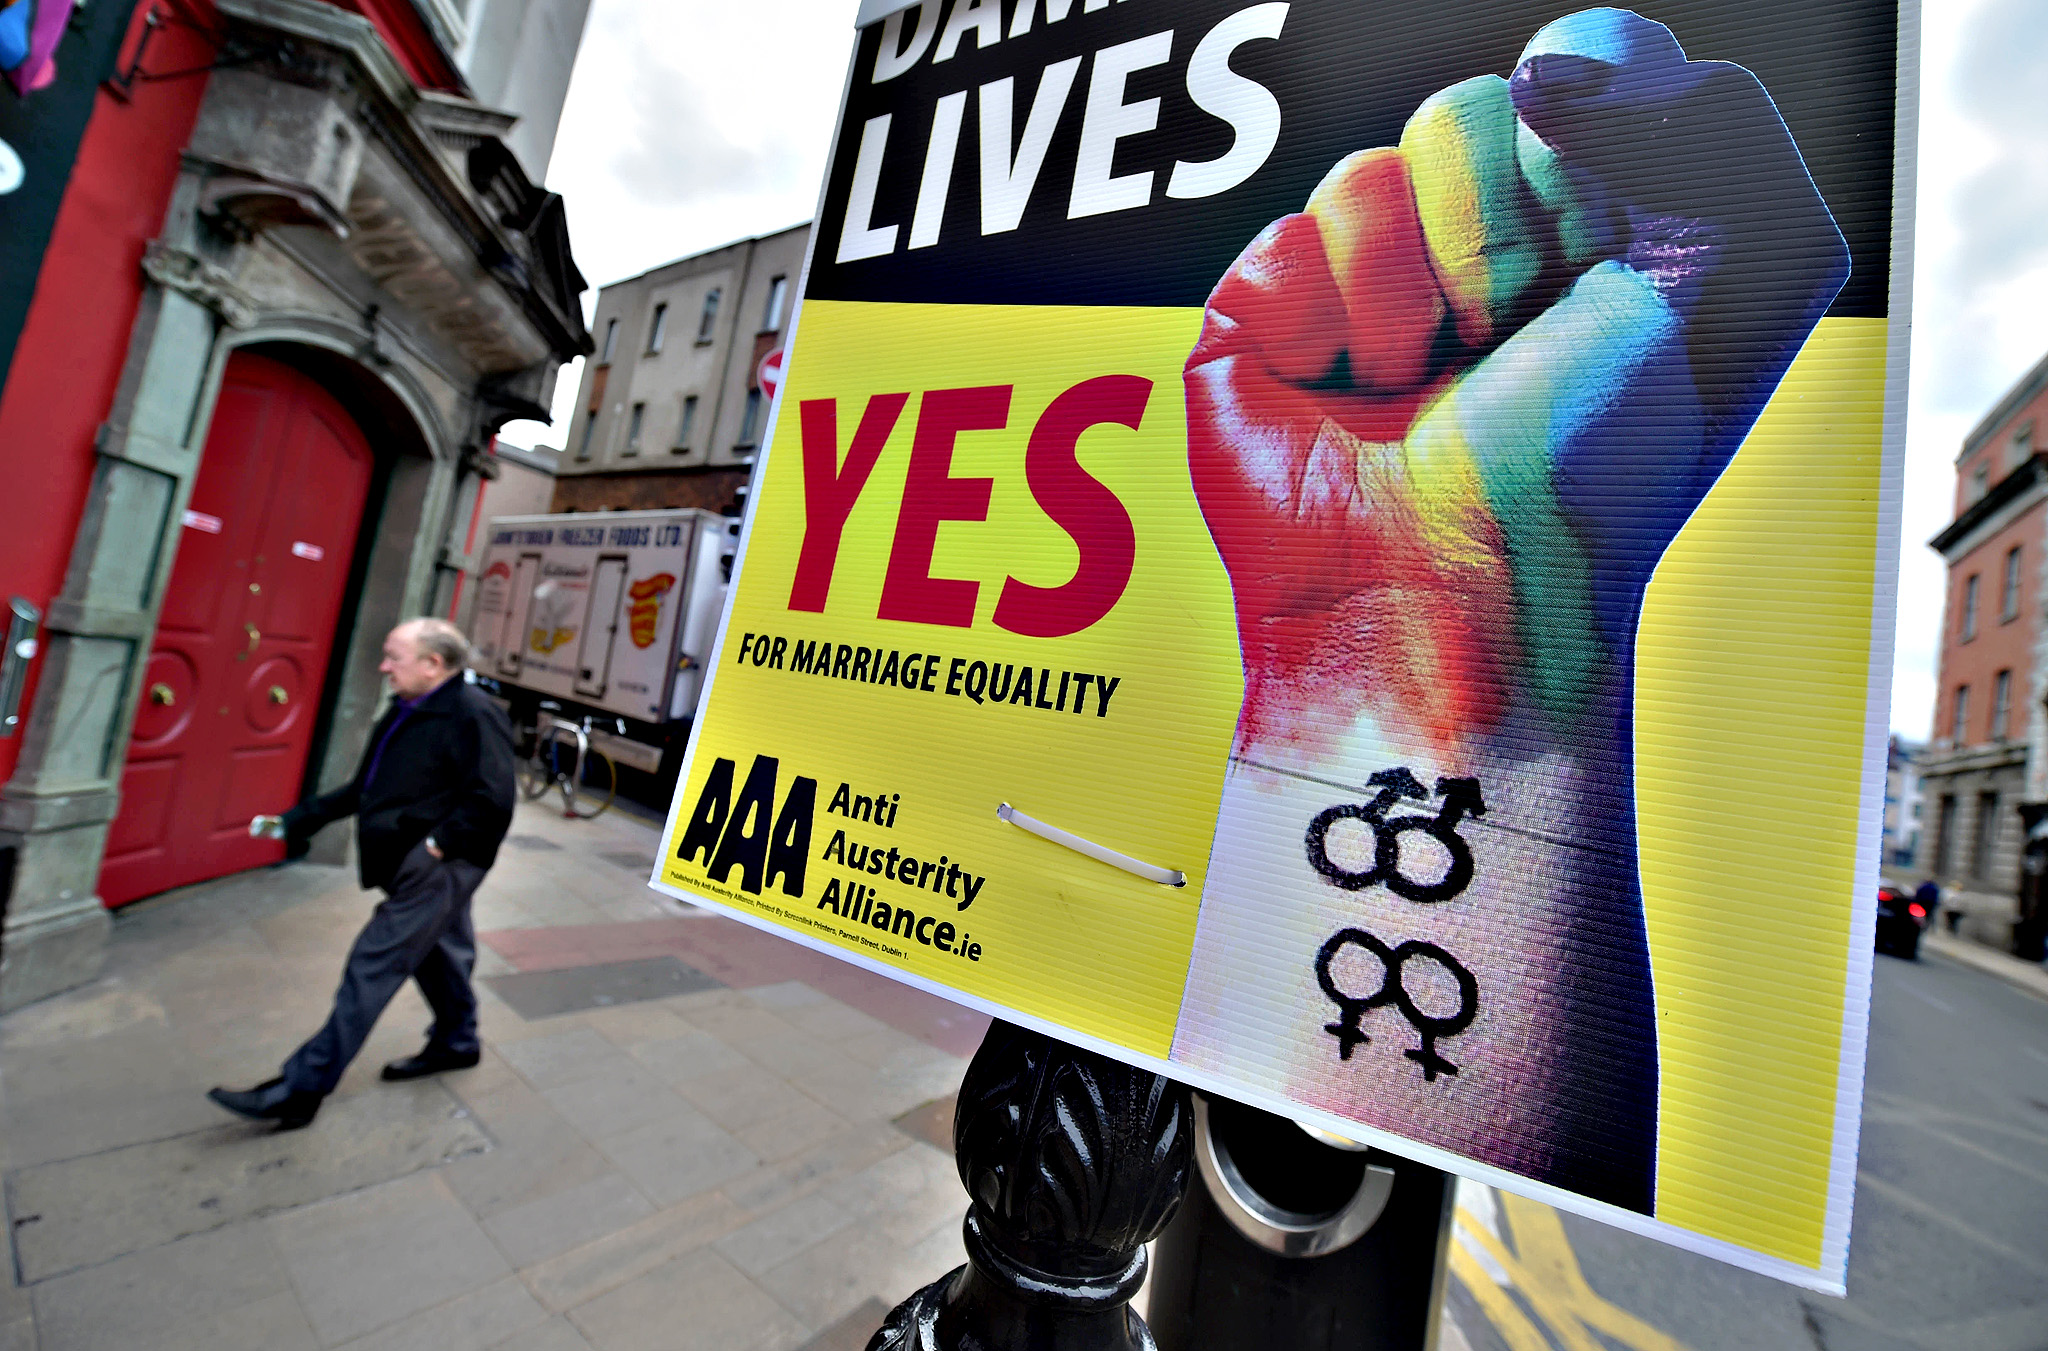 A man walks past billboard posters promoting the Yes campaign in favour of same-sex marriage on Friday in Dublin, Ireland. Voters in the Republic of Ireland are taking part in a referendum on legalising same-sex marriage on Friday. The referendum is being held 22 years after Ireland decriminalised homosexuality with more than 3.2m people being asked whether they want to amend the country's constitution to allow gay and lesbian couples to marry. Polling stations opened at 07:00 BST with voting continuing until 22:00 BST and counting due to start on Saturday morning